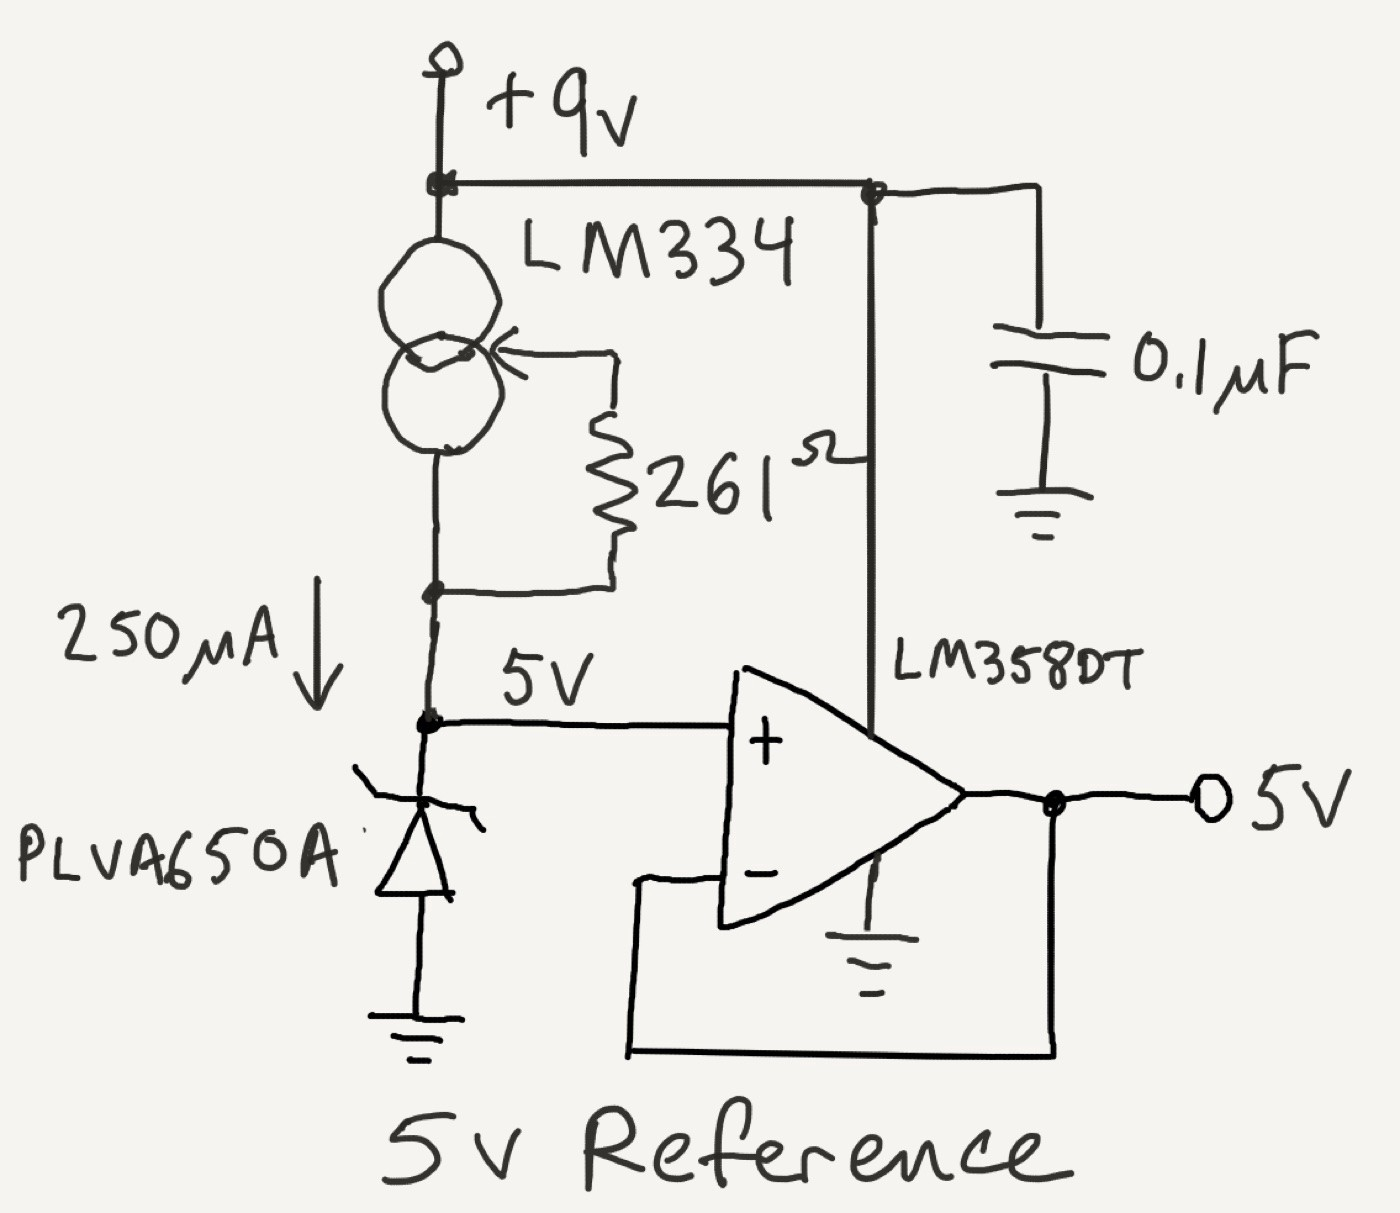 Hello Diodes Tempo Automation Medium Volt Regulator Using Dioda Zener Simple Schematic Diagram A Diode Takes Advantage Of The Limited Breakdown Voltage 5v Is Non Standard So You Should Probably Use Different